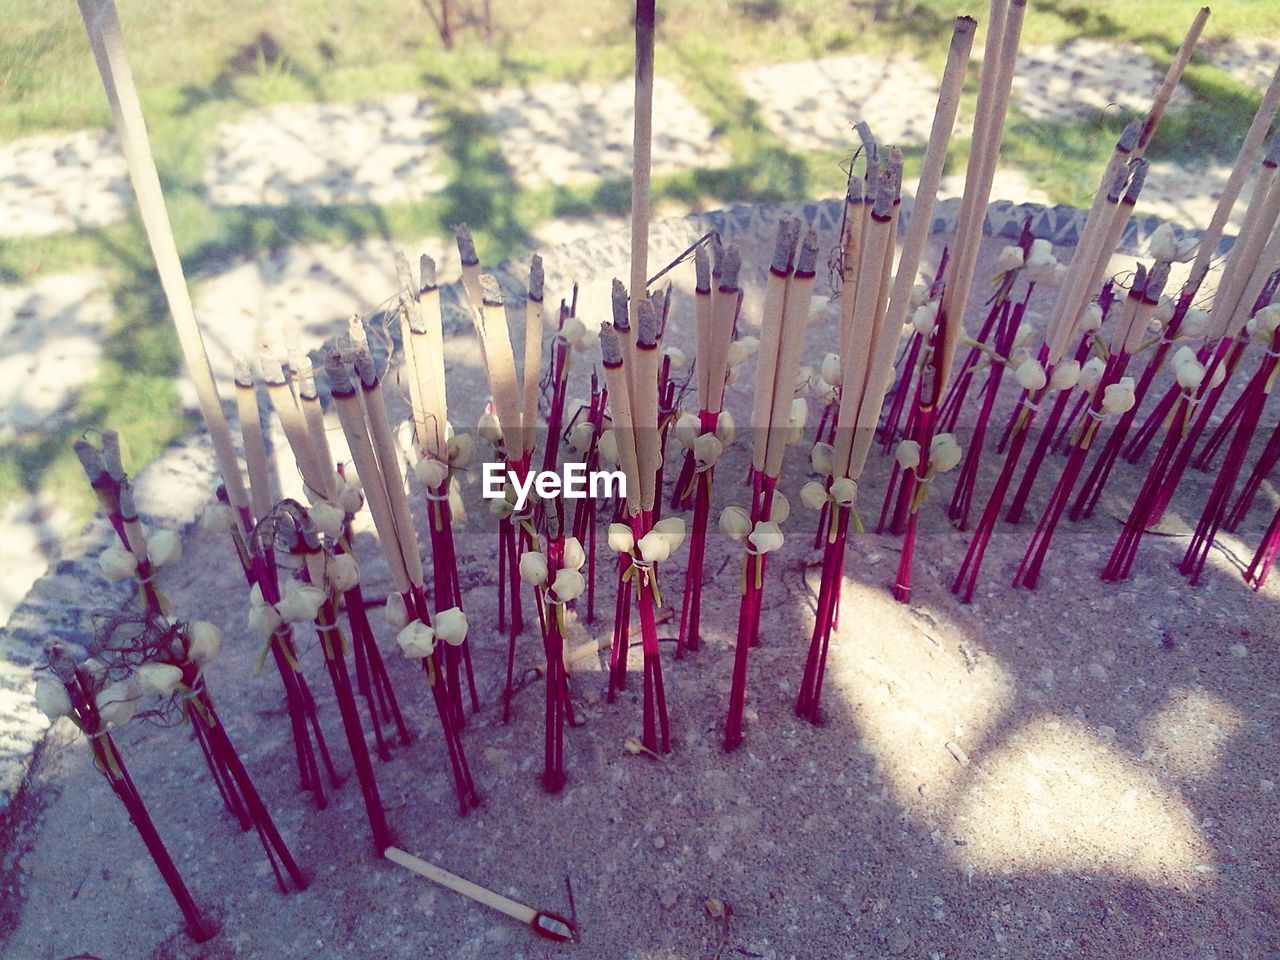 incense, religion, spirituality, belief, nature, no people, day, sunlight, large group of objects, outdoors, field, land, place of worship, ash, shadow, hope, burning, scented, stick - plant part, religious equipment